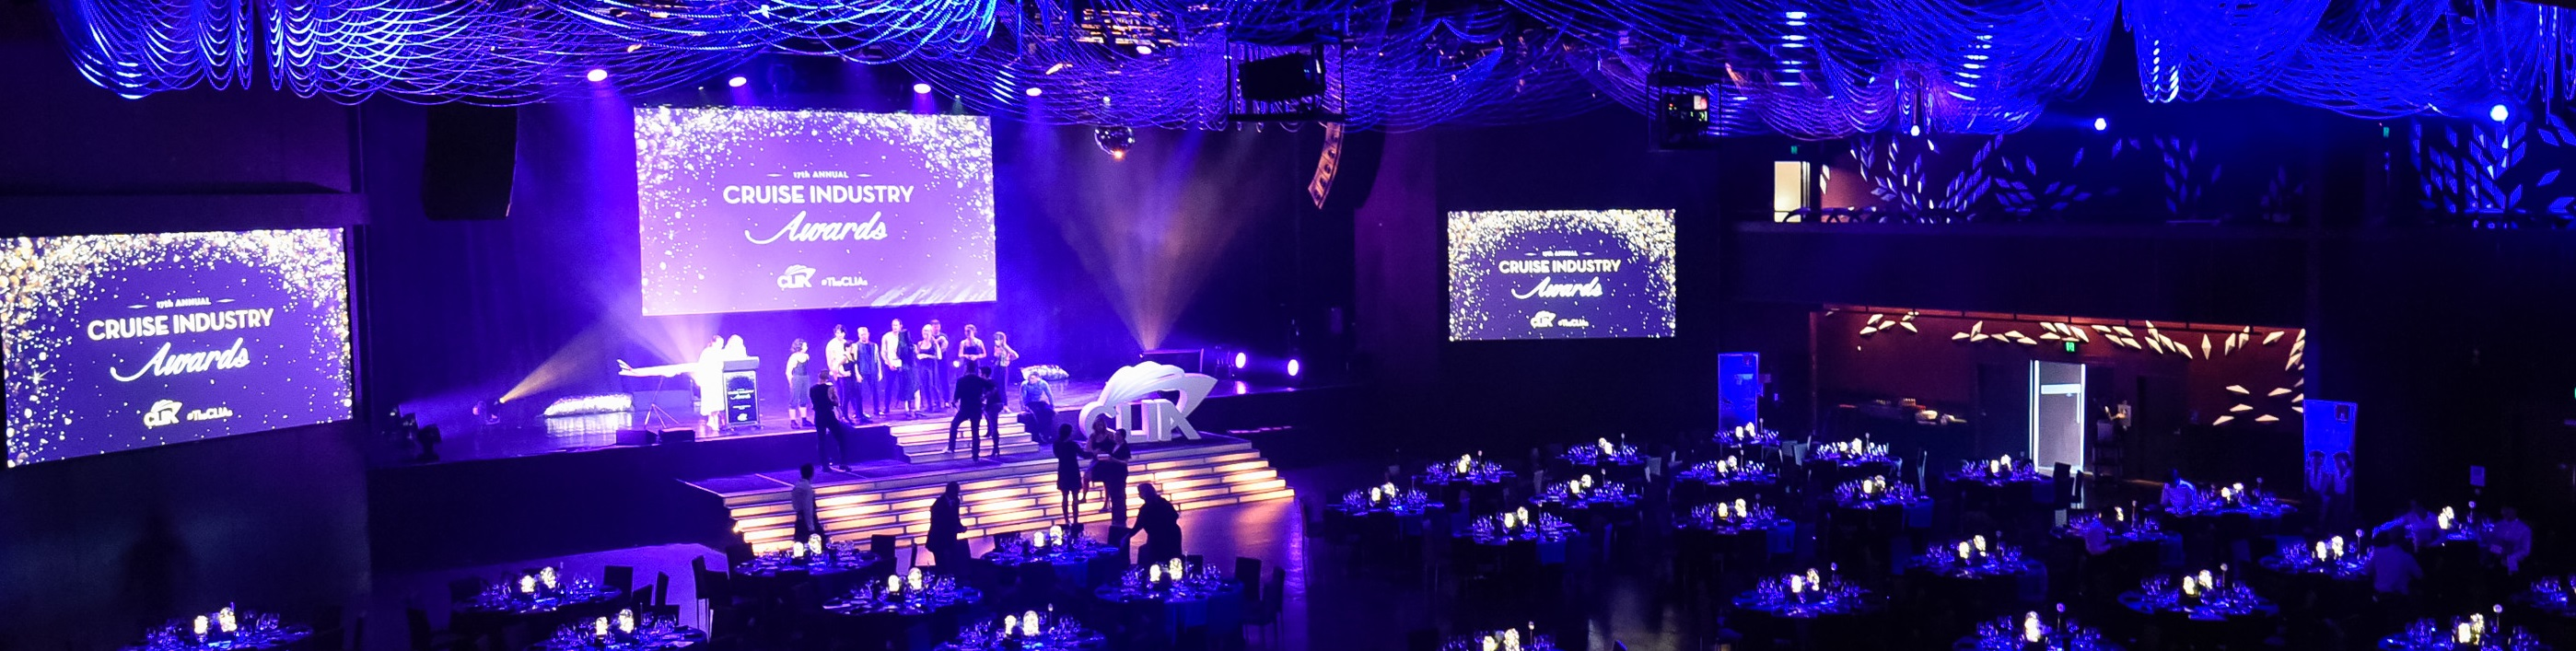 Cruise Industry Awards 2018